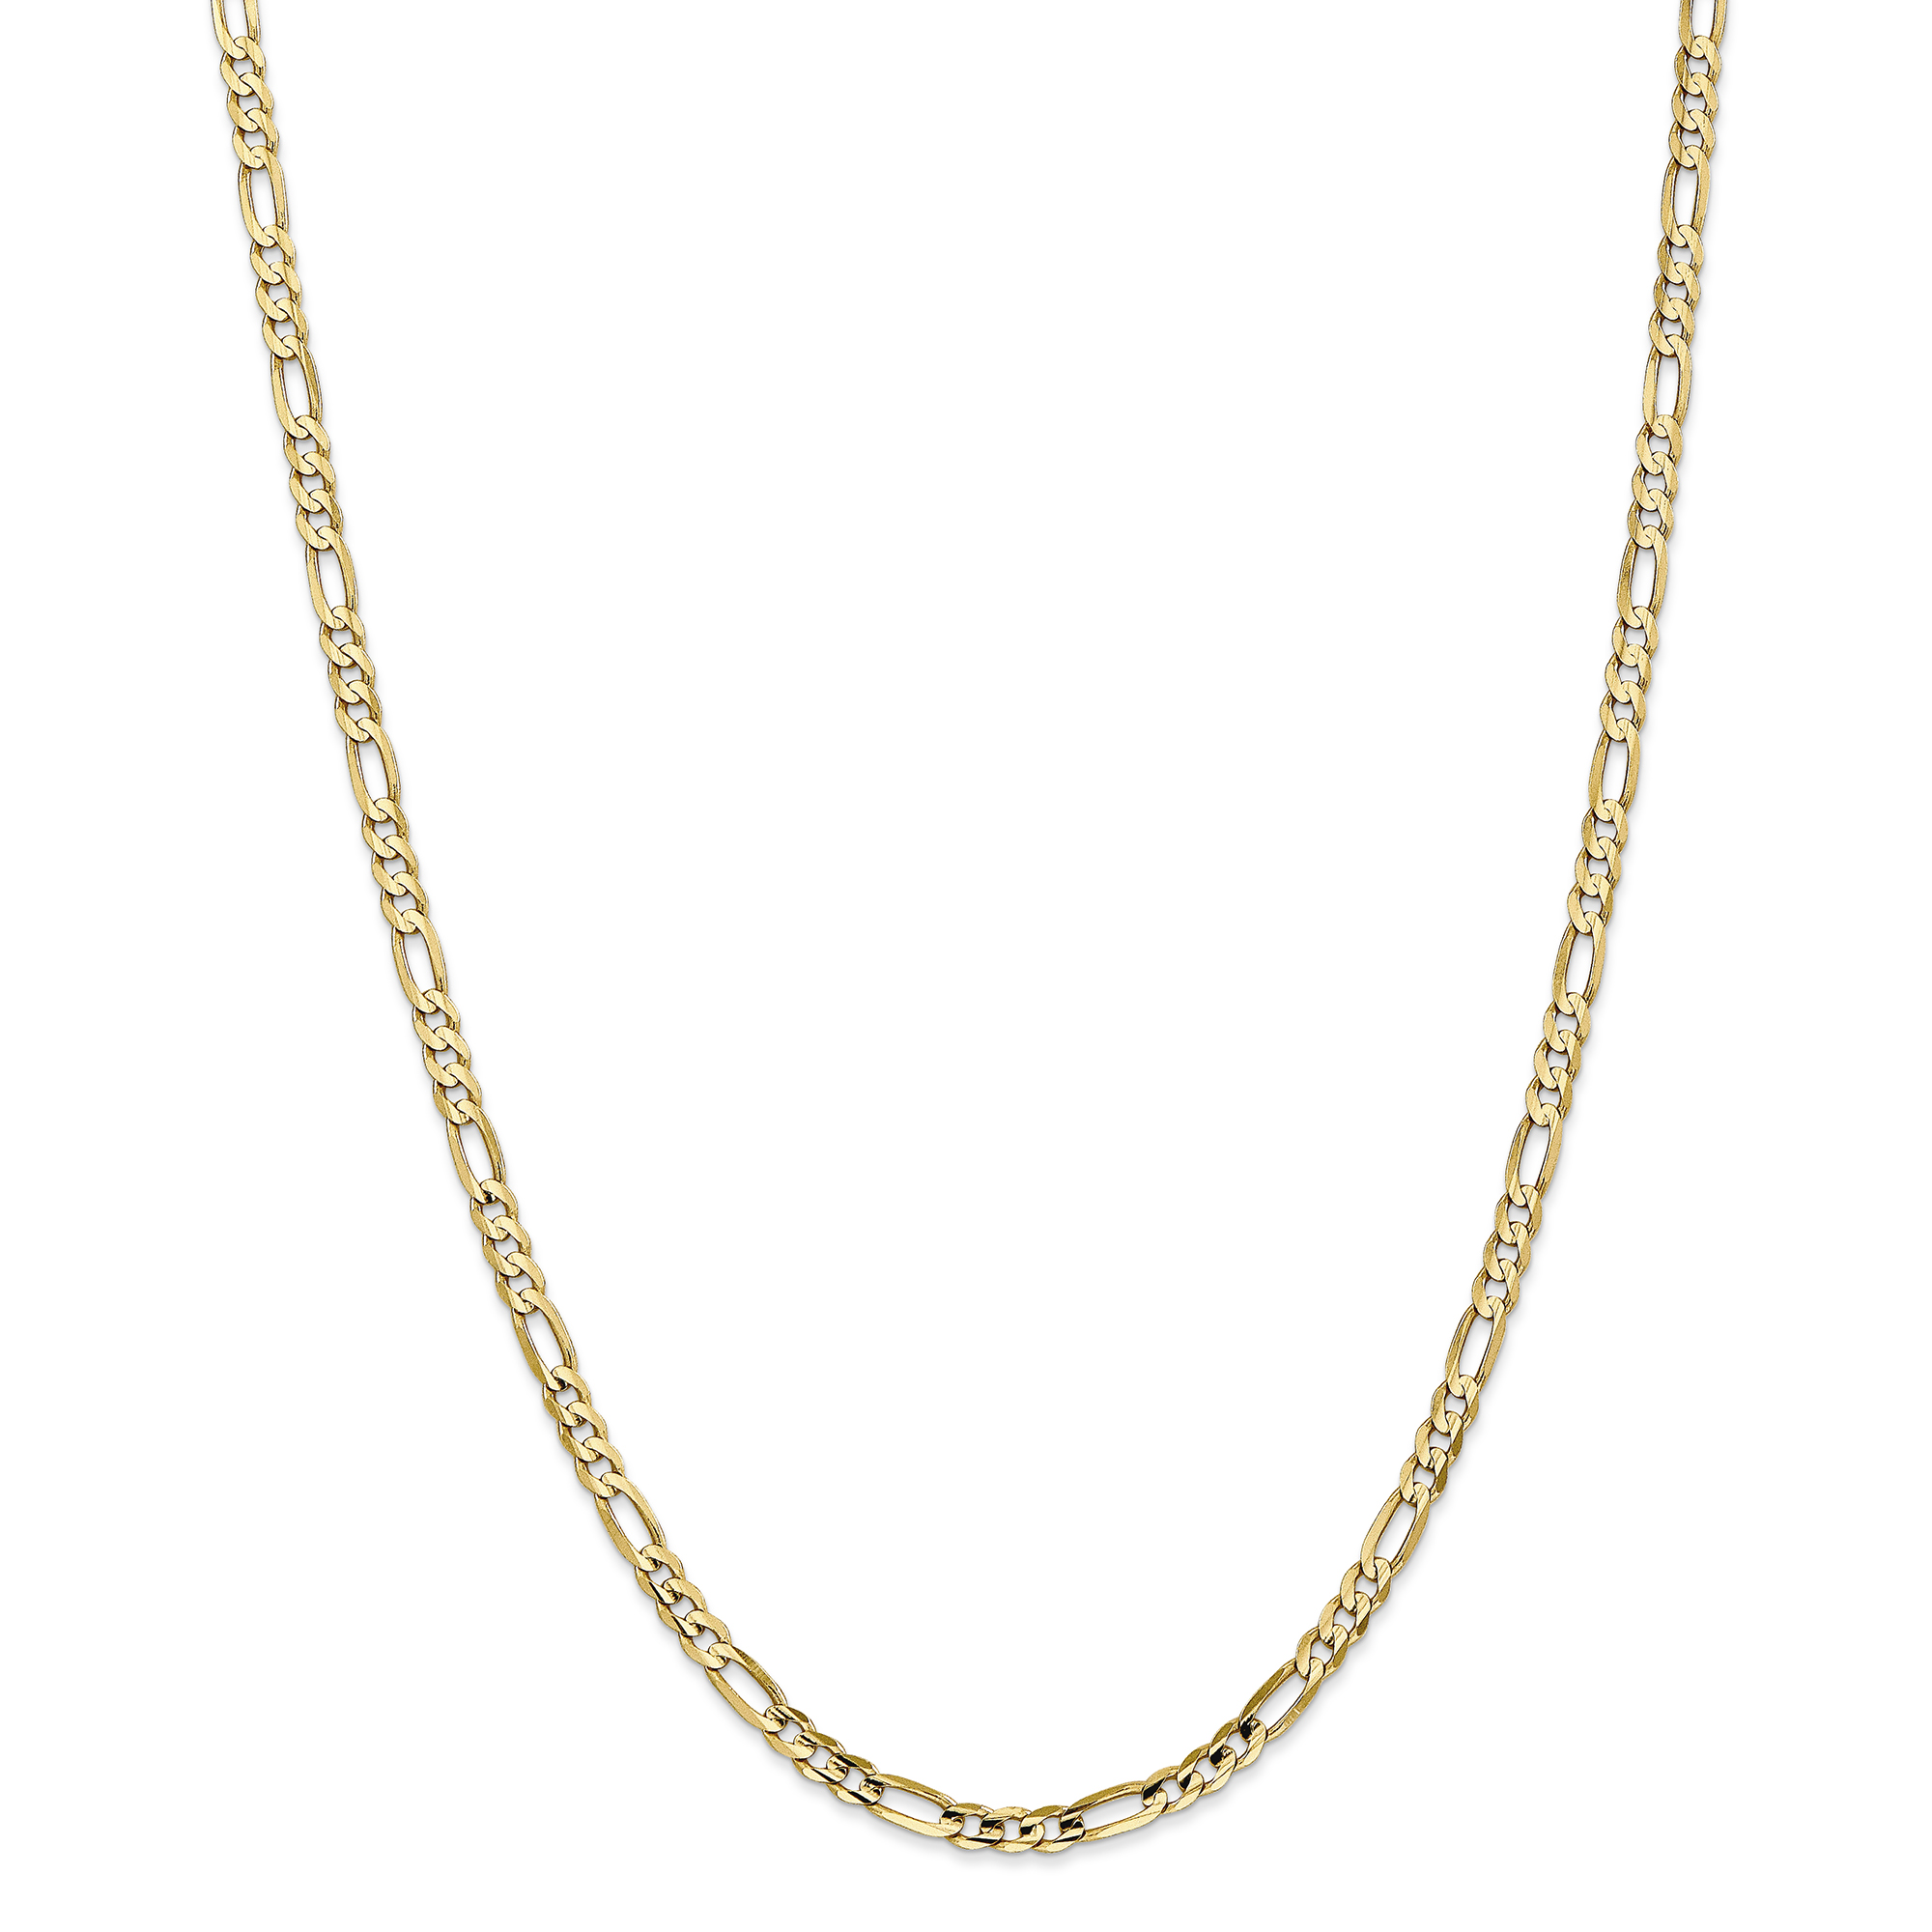 14K Yellow Gold 4mm Concave Open Figaro Chain - image 5 de 5